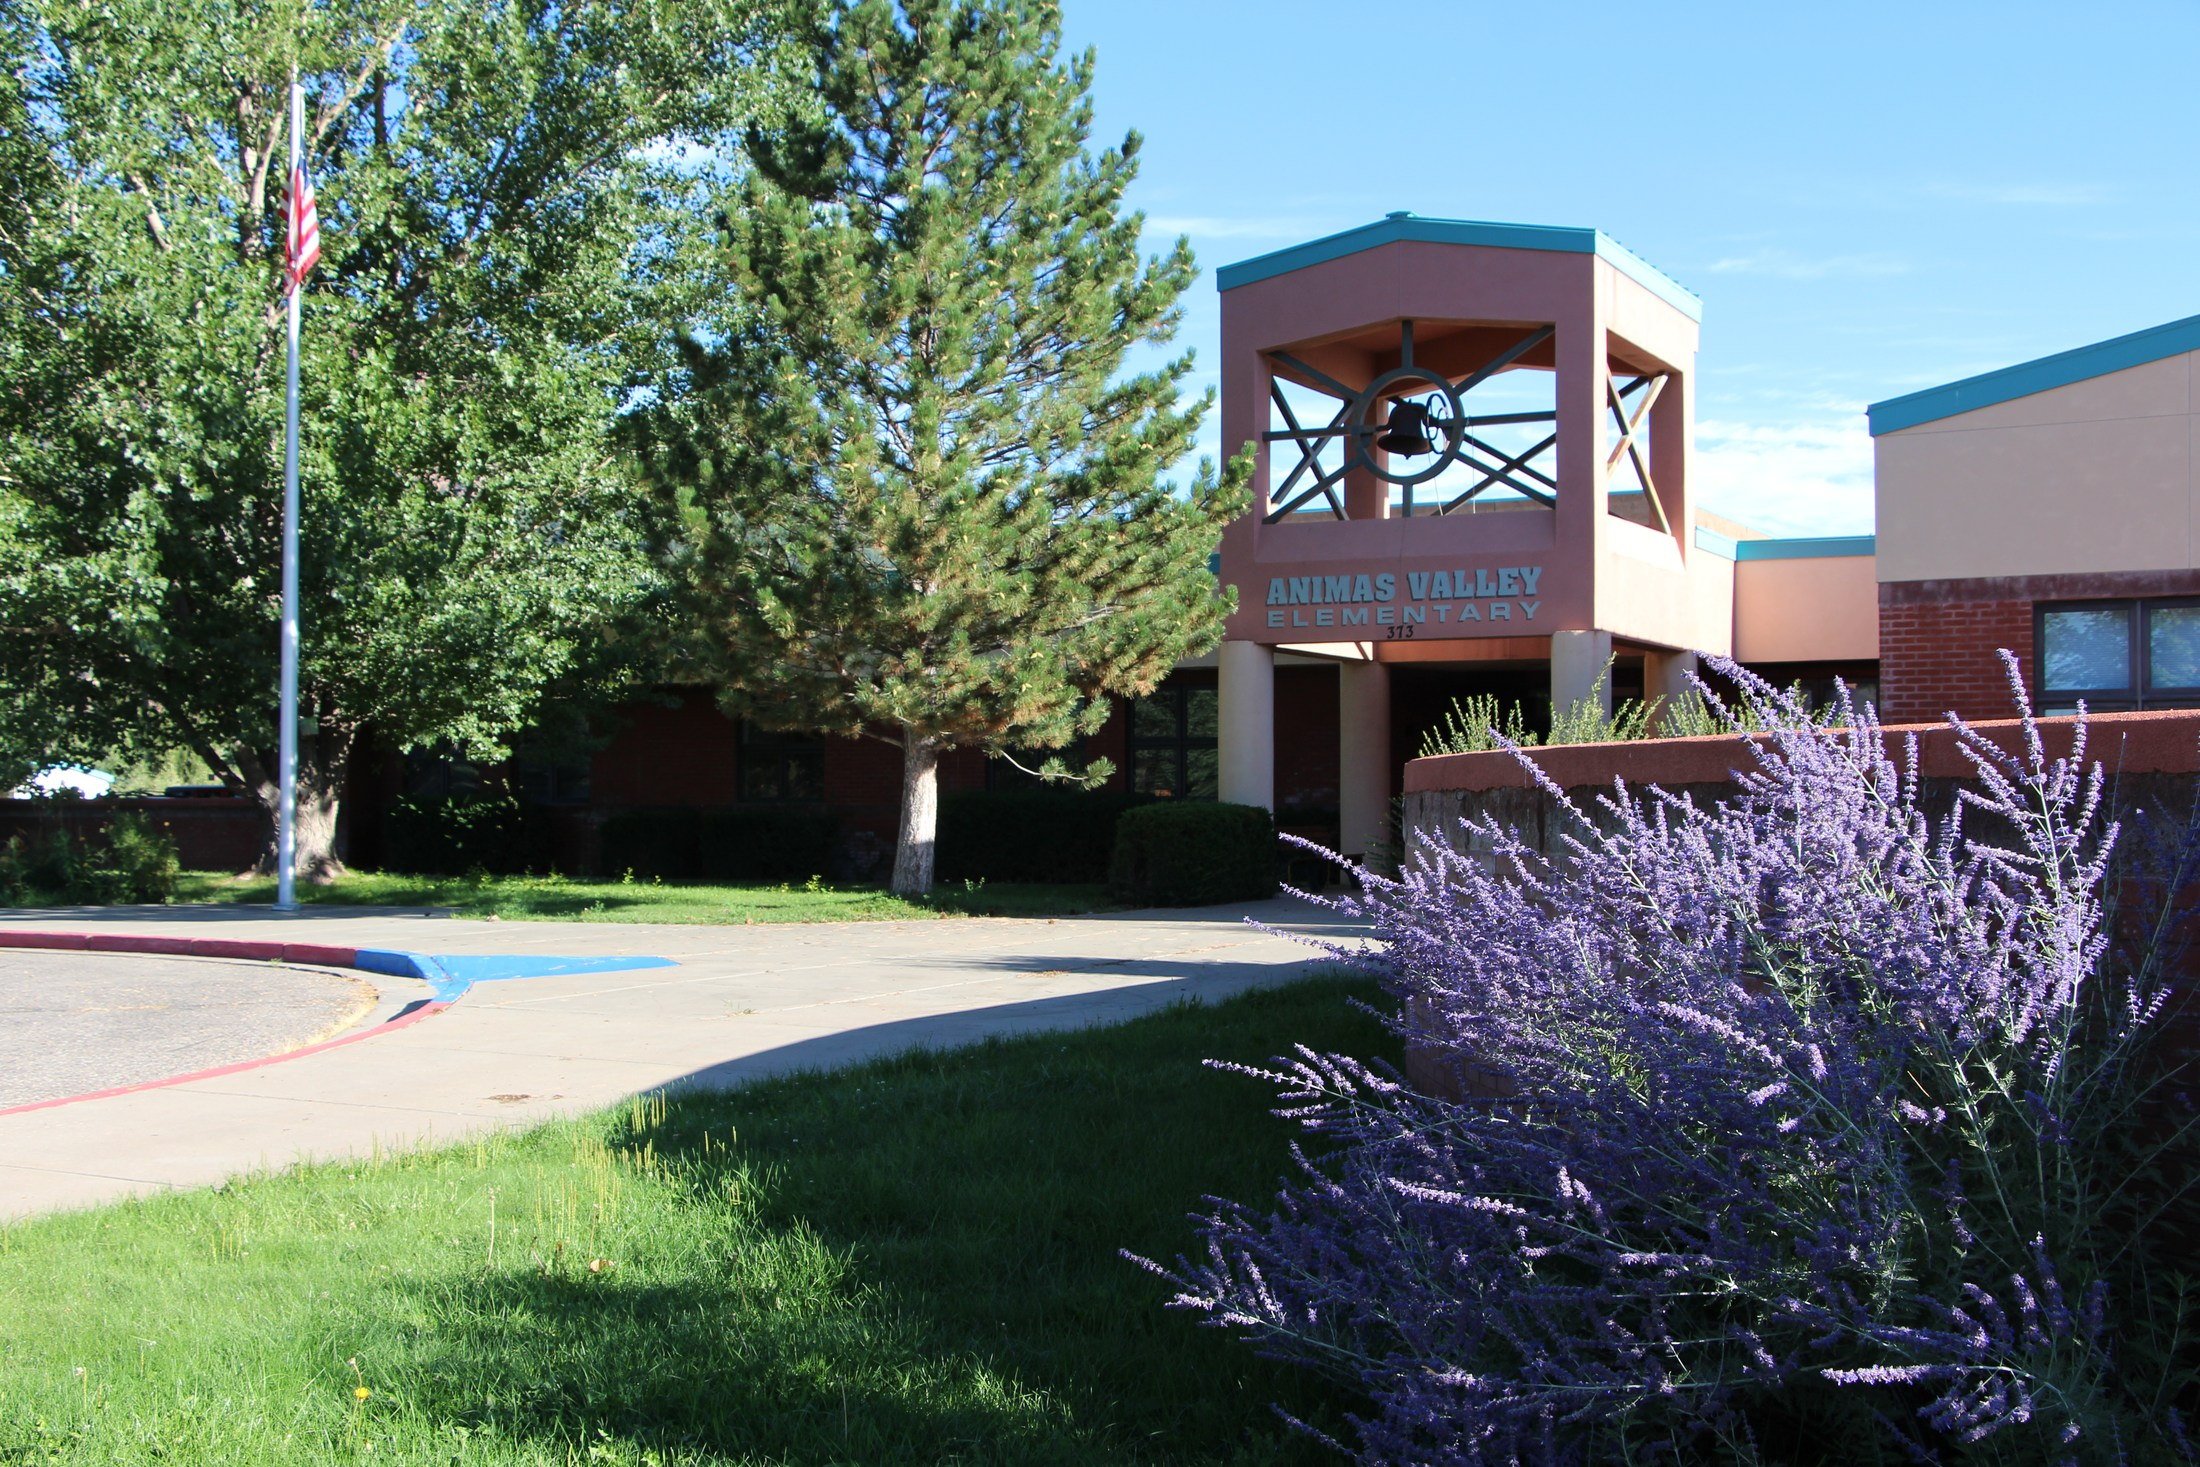 Exterior view of Animas Valley Elementary in the spring.